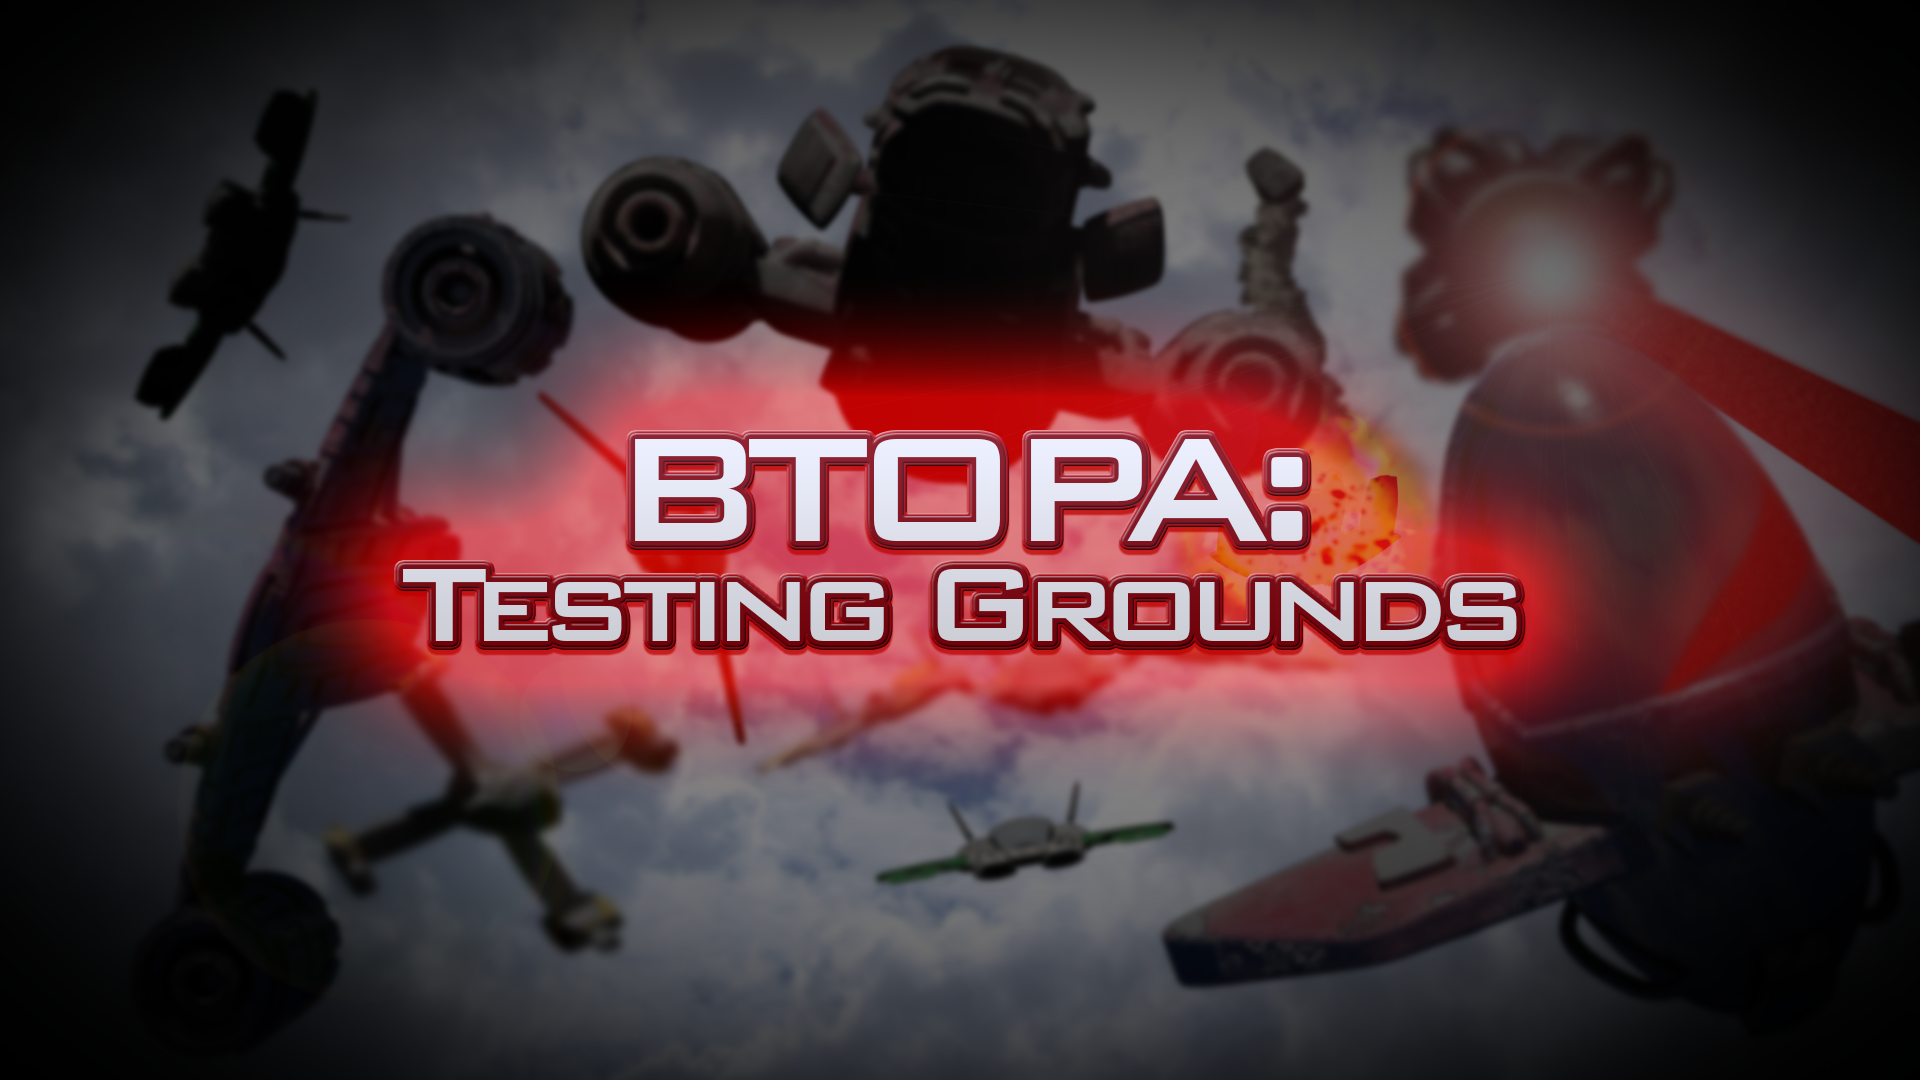 BTOPA: Testing Grounds